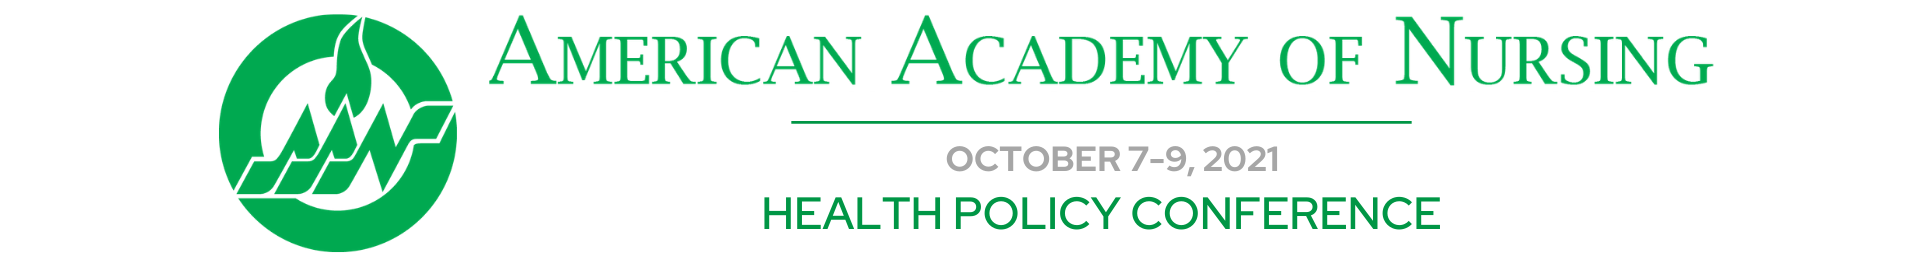 2021 Health Policy Conference Event Banner